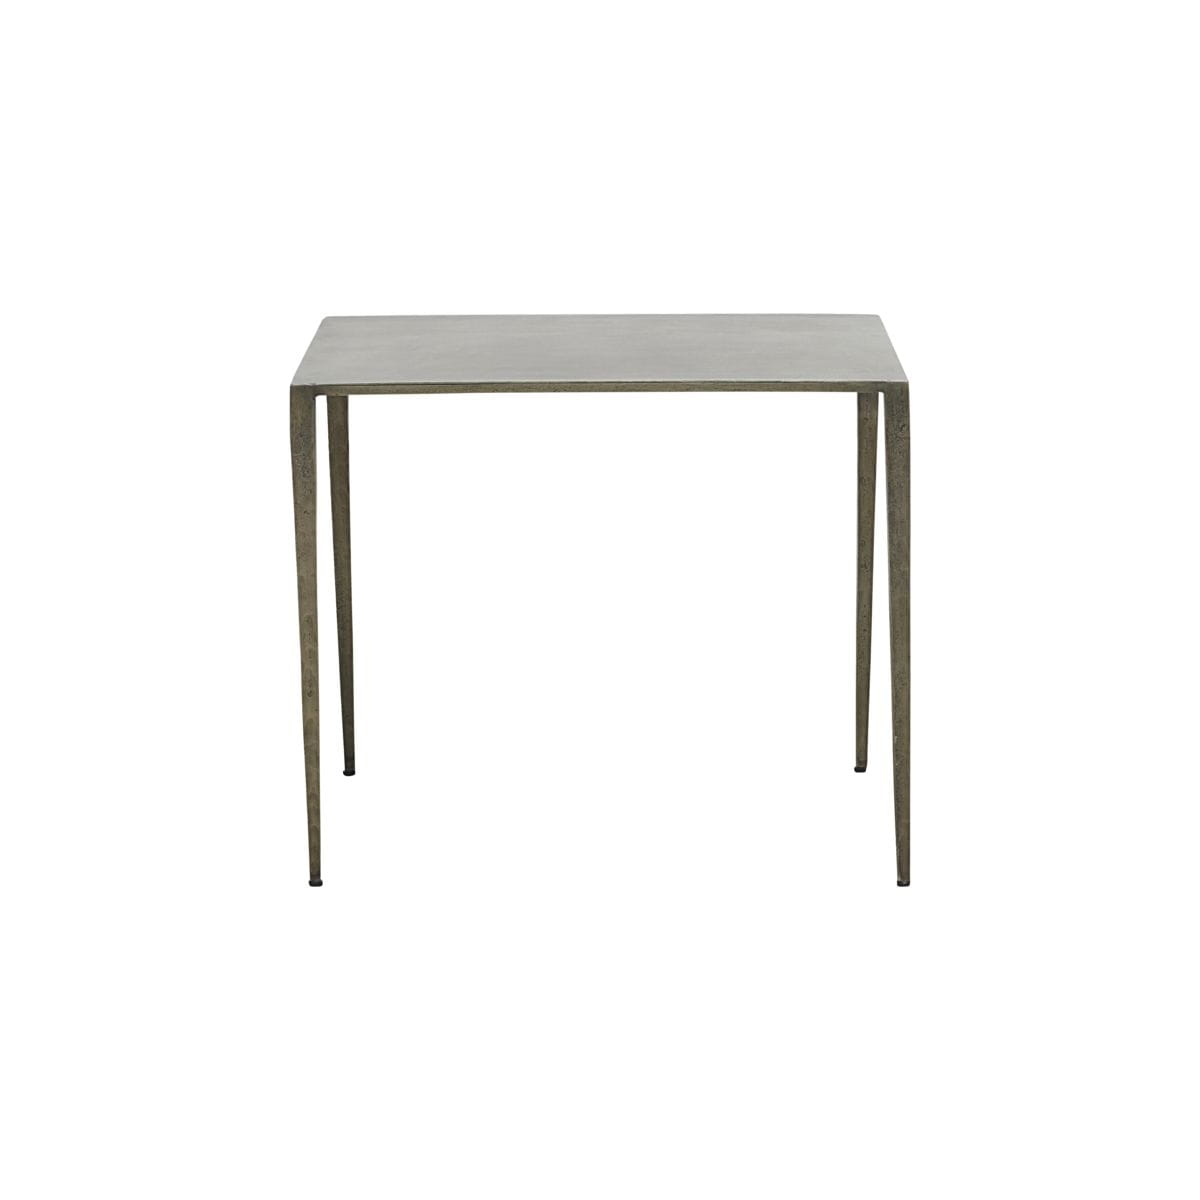 Side table RANCHI L nickel - House Doctor